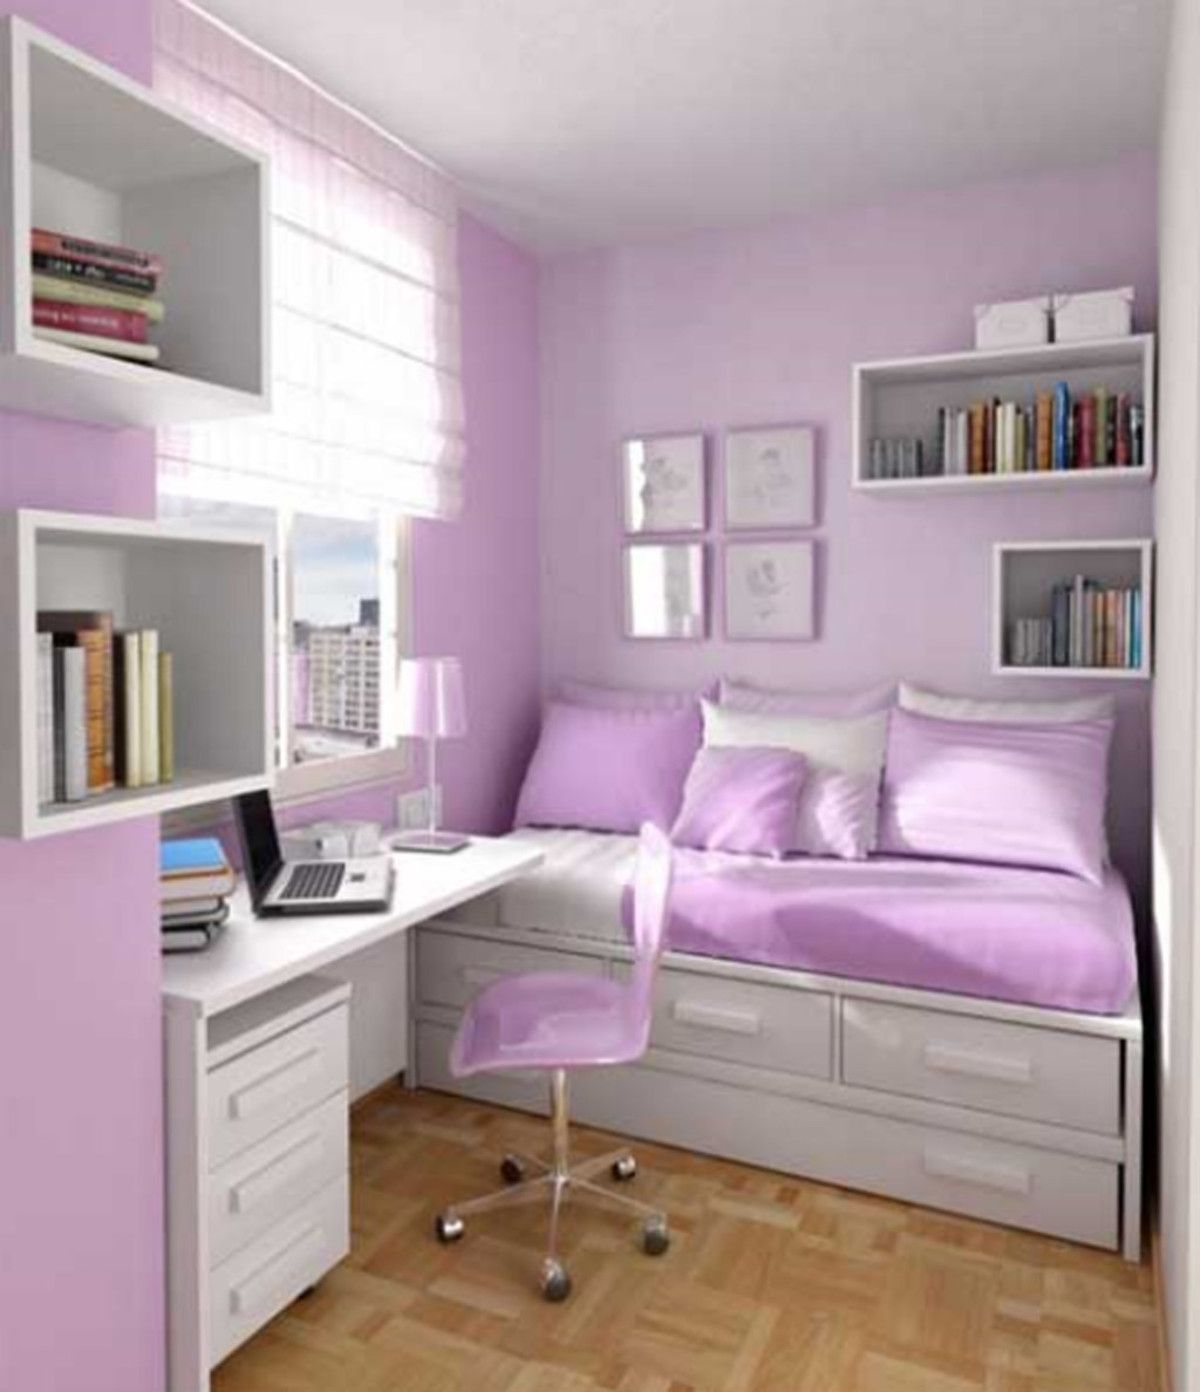 12 Perfect And Calming Bedroom Ideas For Women: Pin On Room Ideas